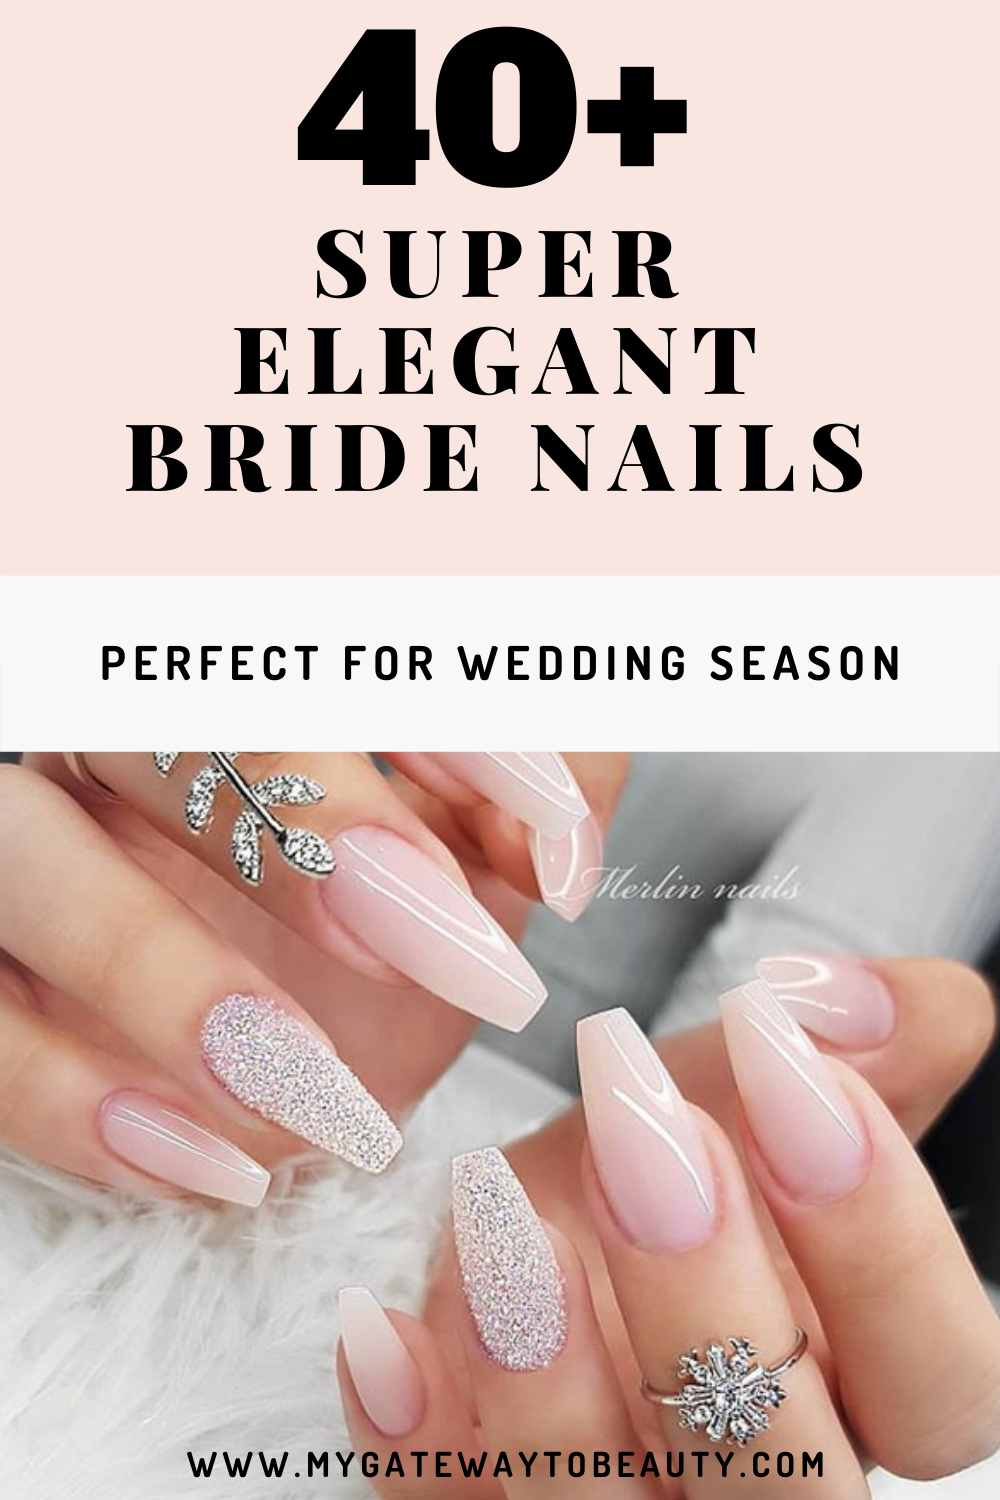 Contact Support In 2020 Wedding Acrylic Nails Bride Nails Wedding Nails Design